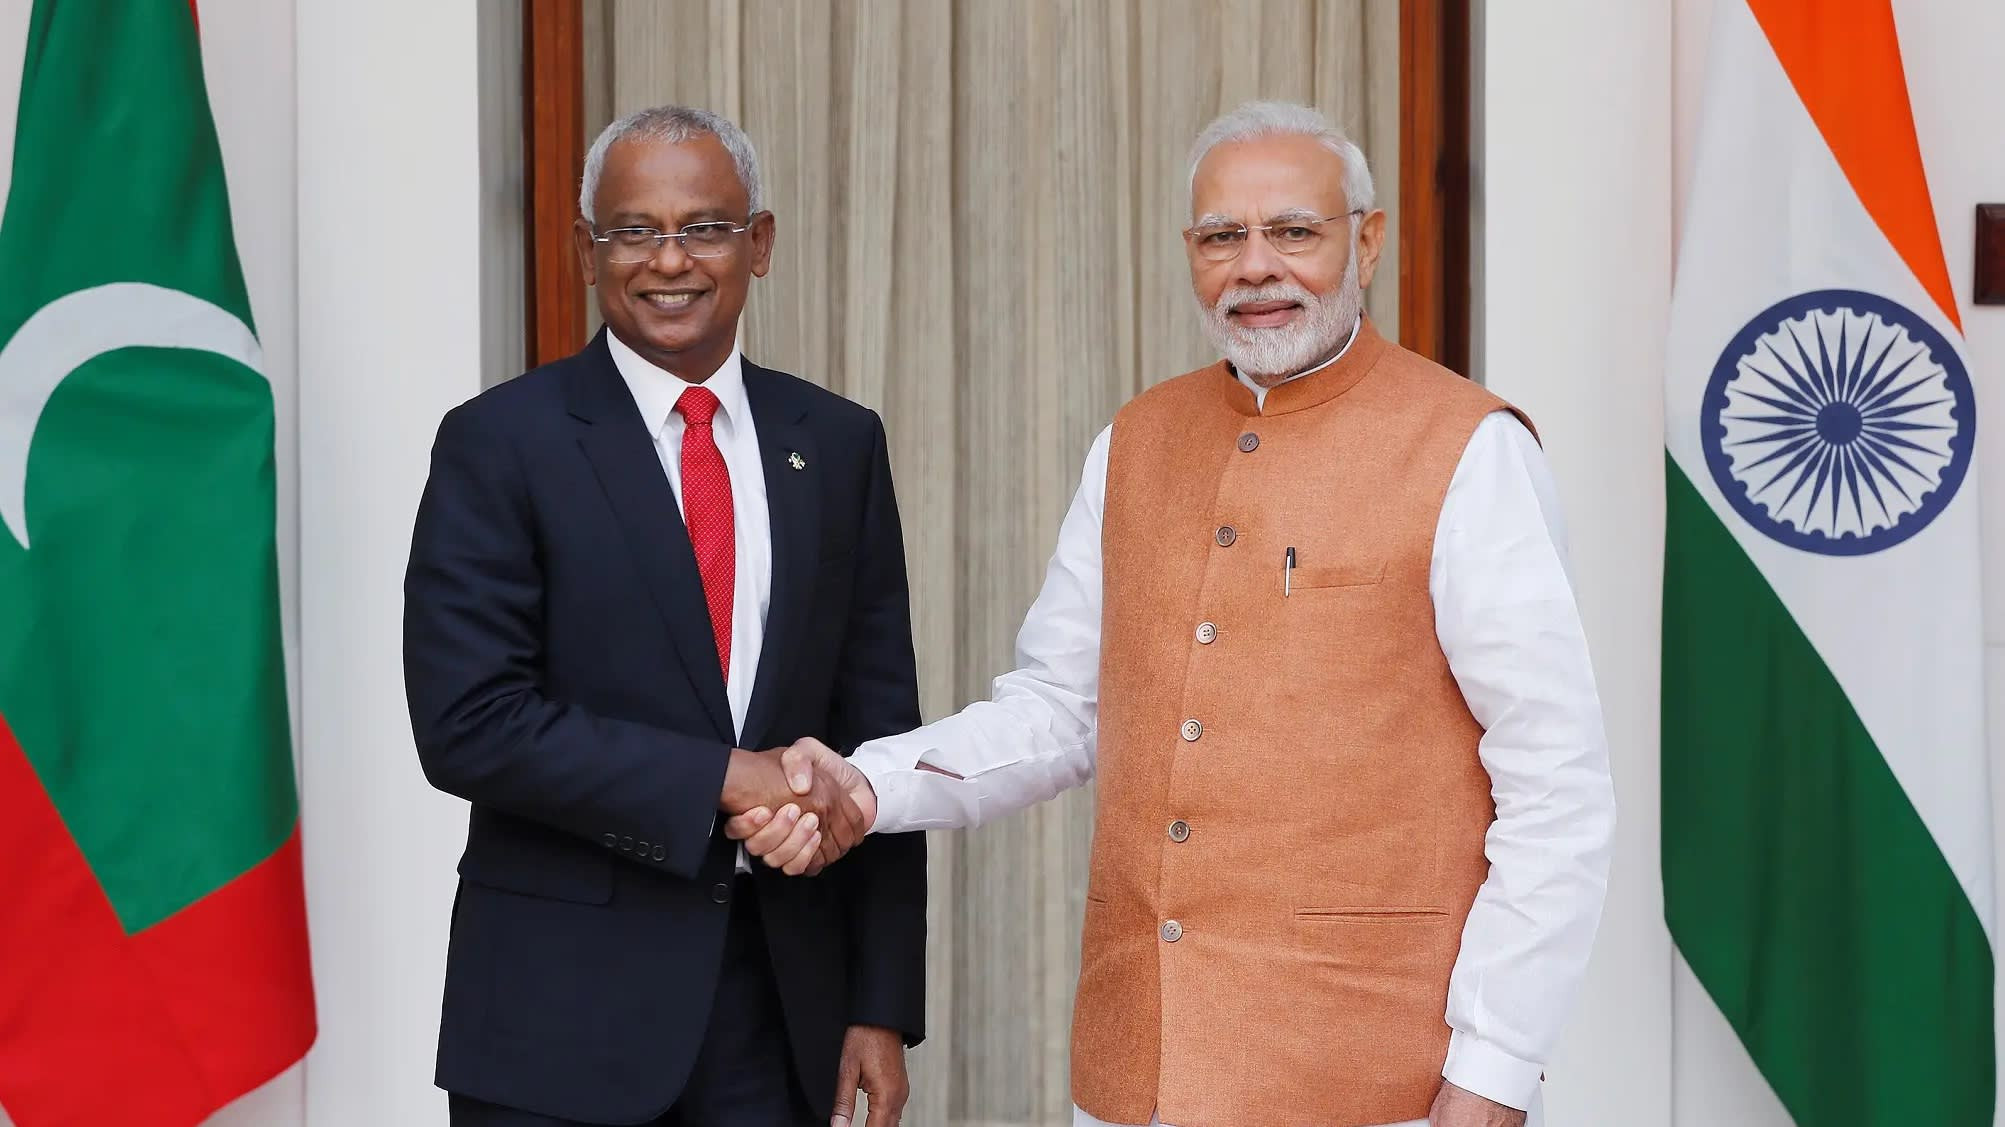 Maldives Inches Closer To Re-enter Commonwealth